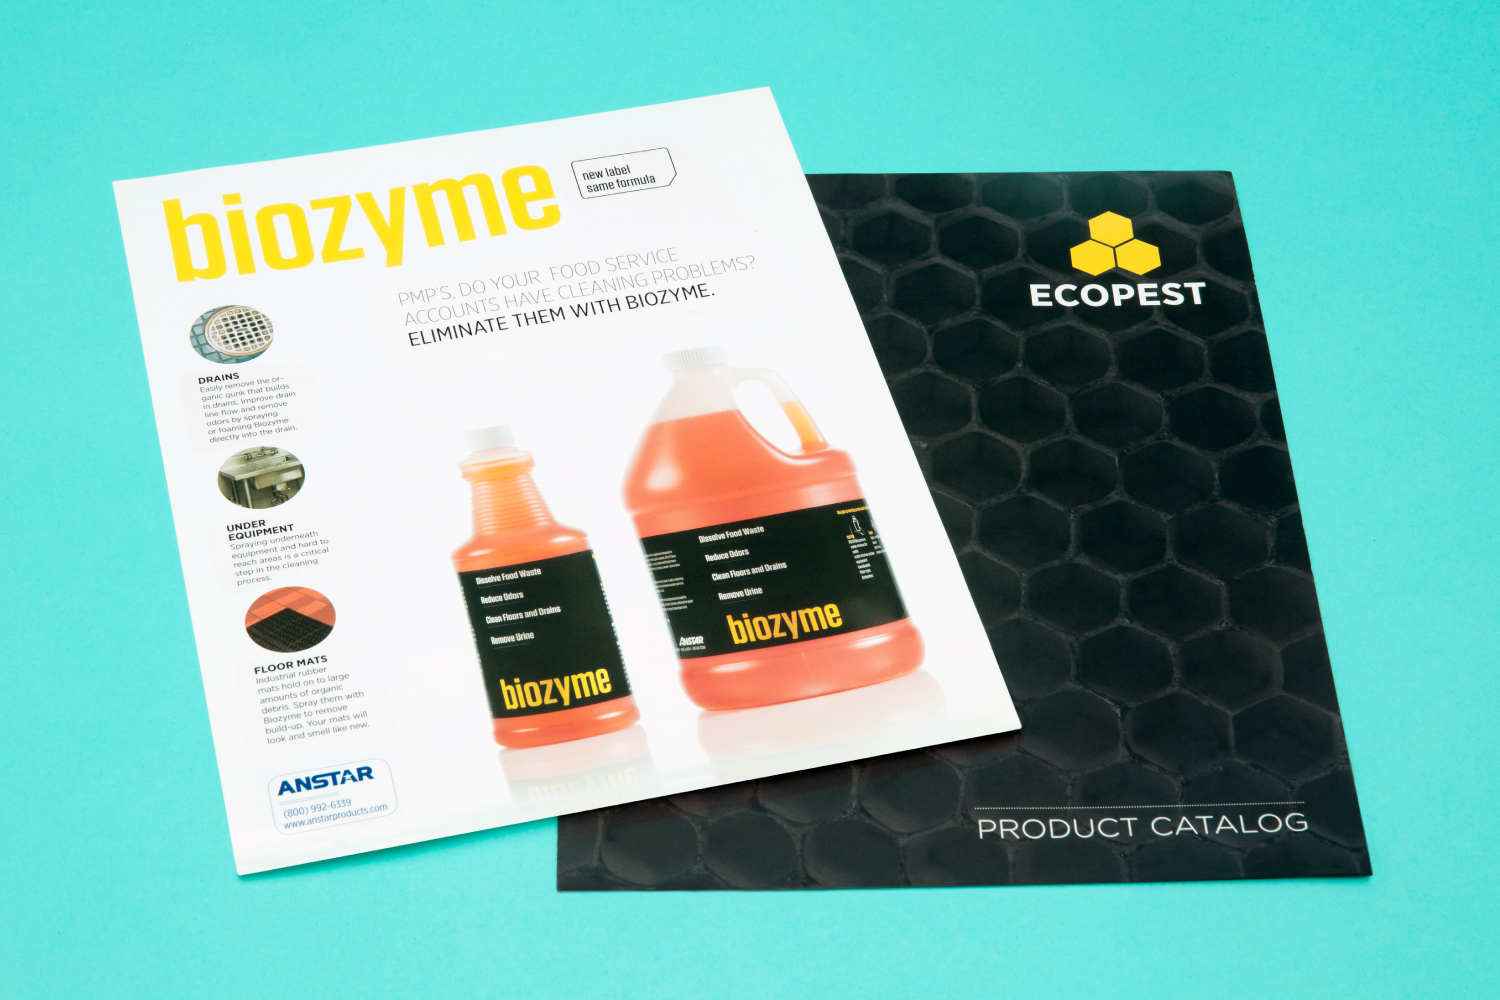 Biozyme branding and packaging design.